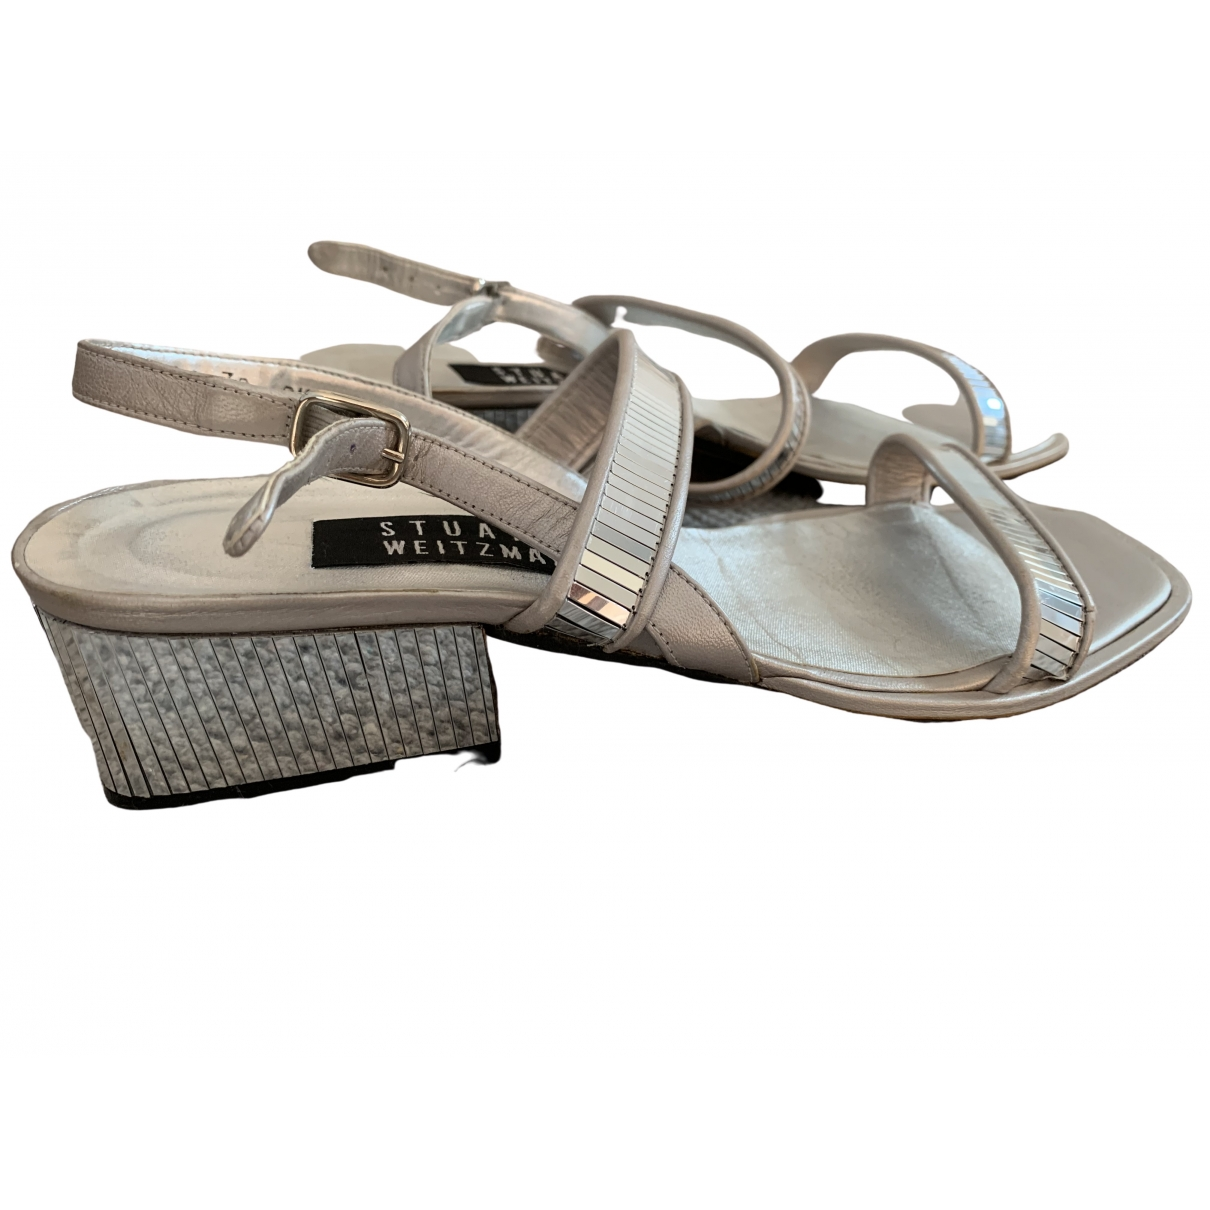 Stuart Weitzman \N Silver Leather Sandals for Women 38.5 EU